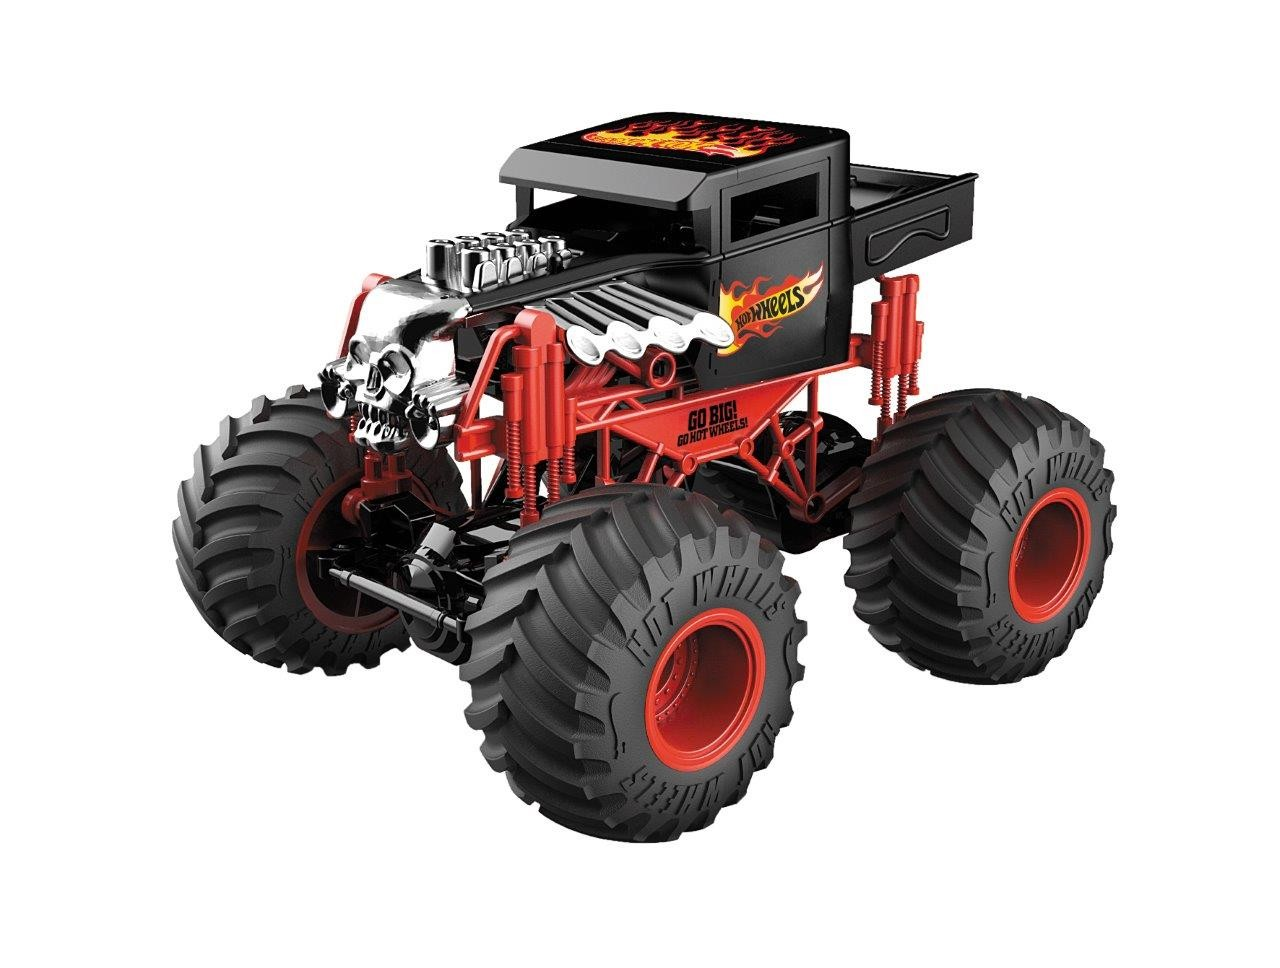 Radiocomandato Hot Wheels Monster Trucks Bone Shaker